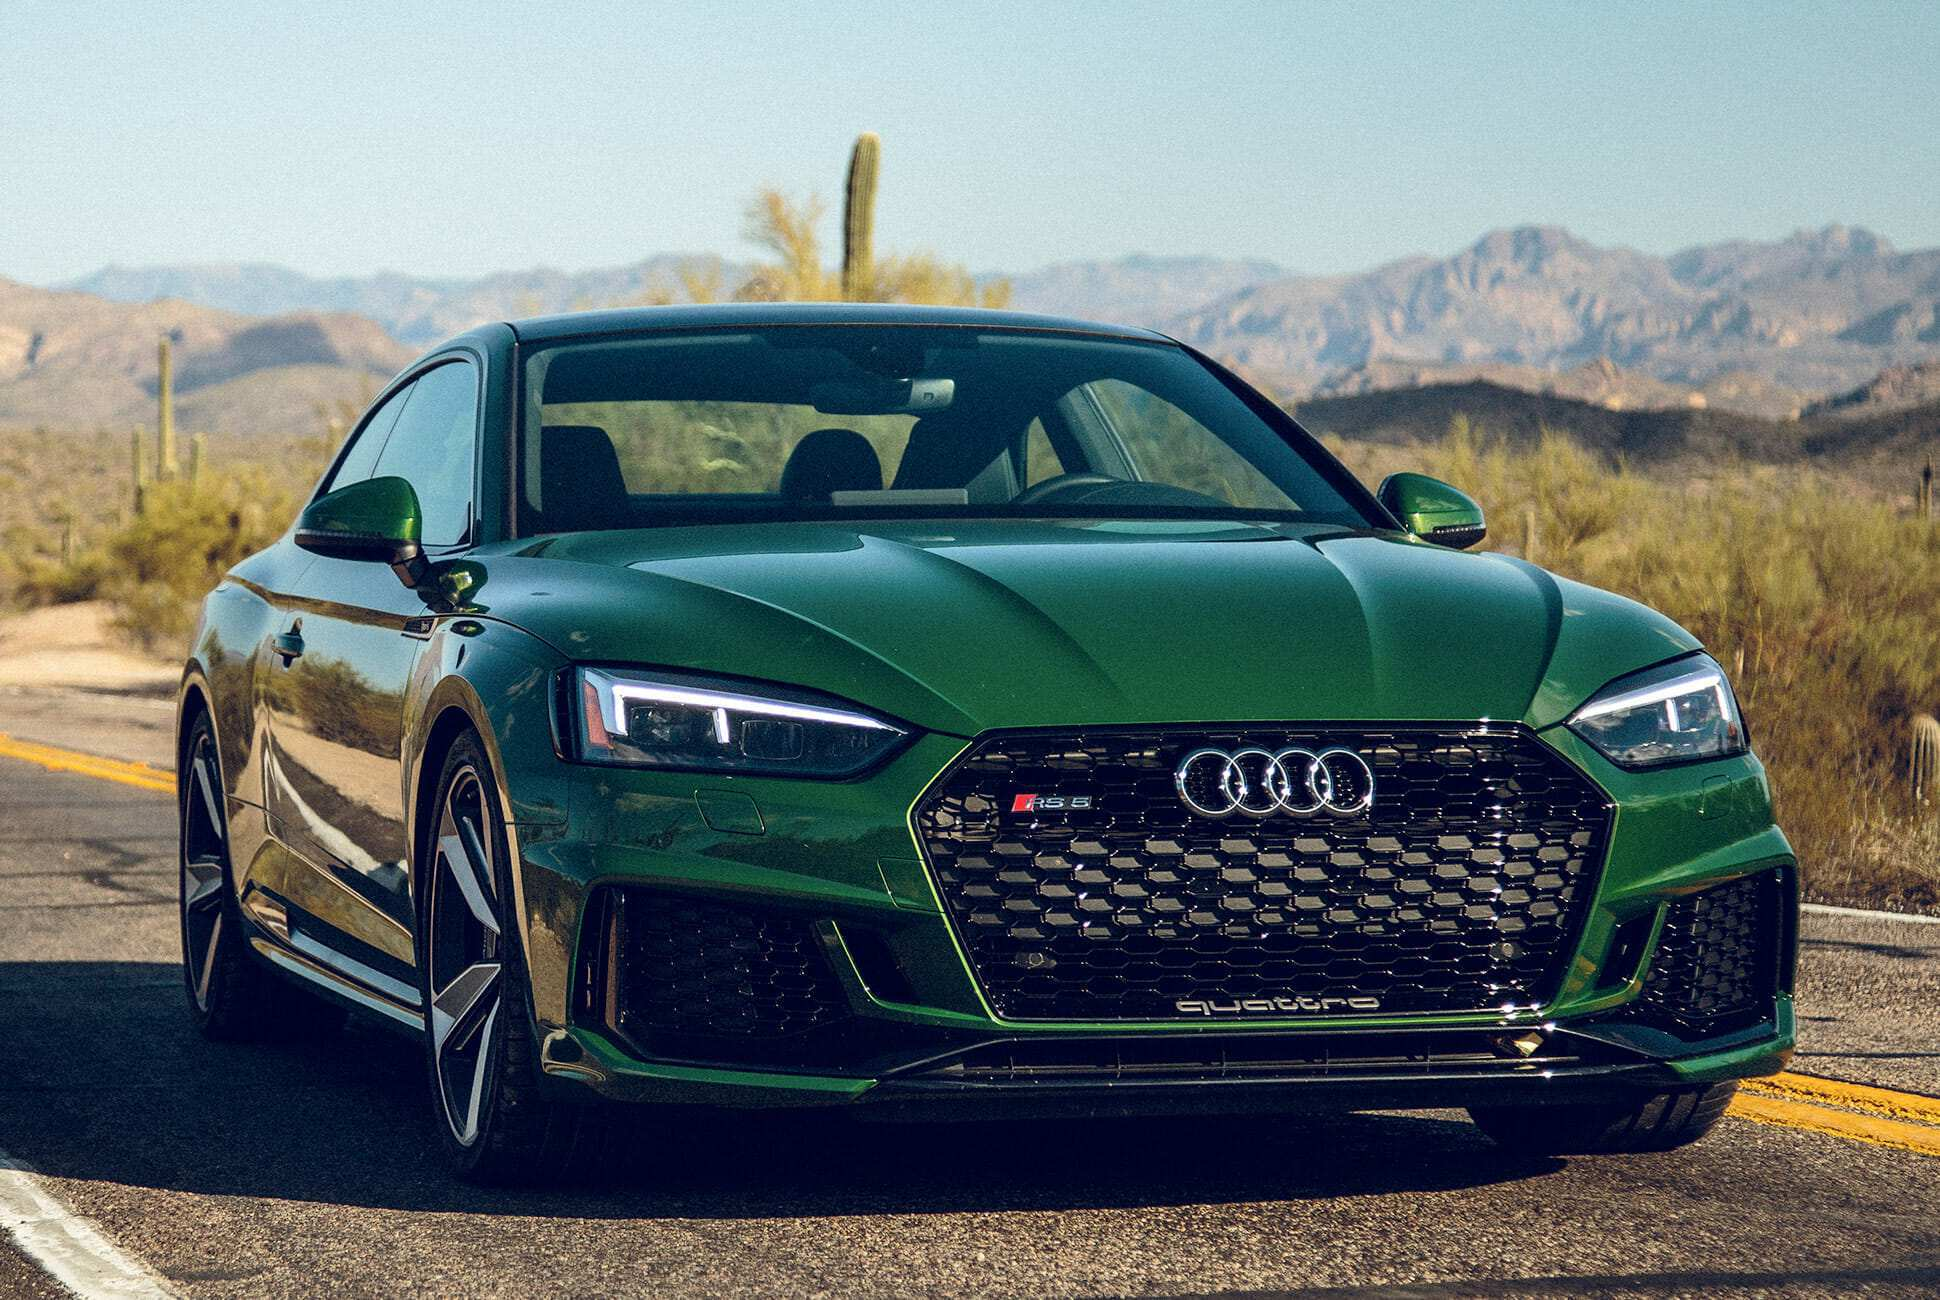 53 Gallery of Audi Sq5 2019 Order Guide New Release Concept with Audi Sq5 2019 Order Guide New Release